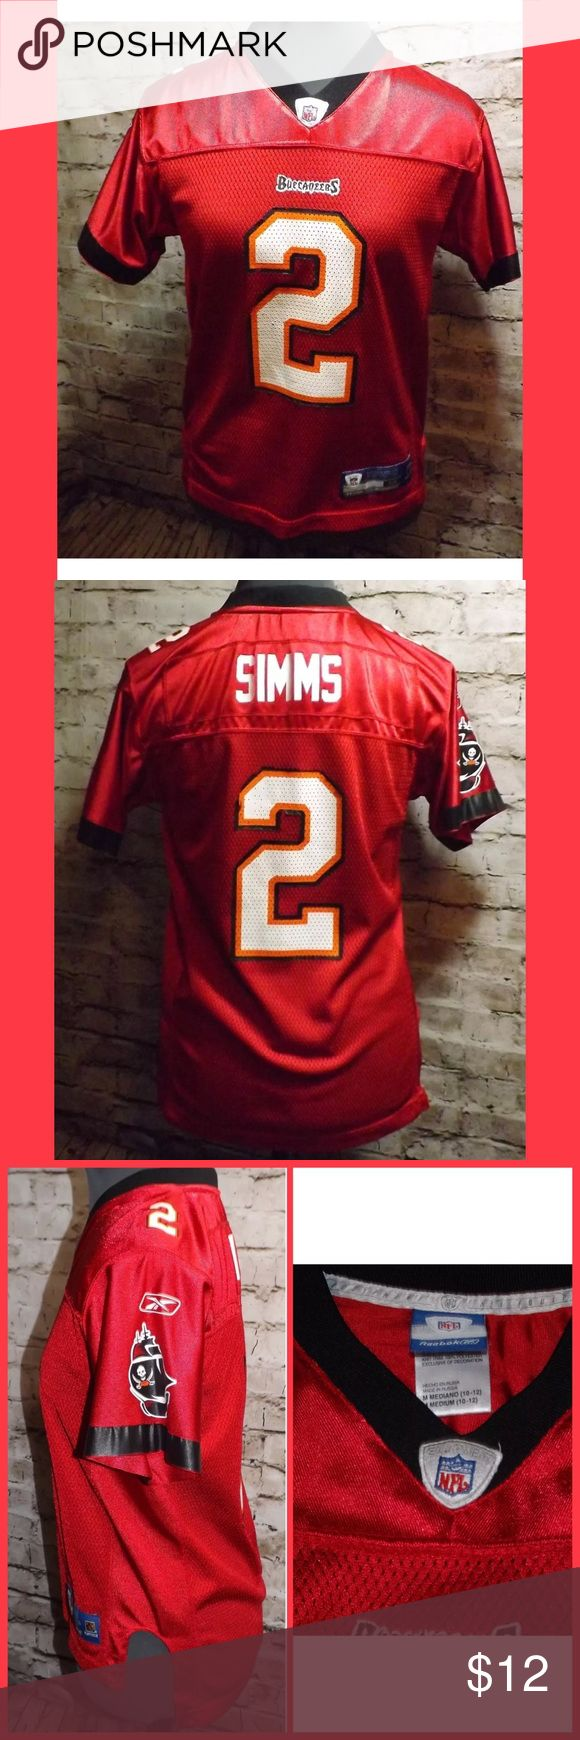 Reebok Buccaneers CHRIS SIMMS NFL Jersey shirt M This is a really nice Reebok Tampa Bay Buccaneers CHRIS SIMMS NFL  Jersey shirt. Size Medium (10/12). The only flaws that I noticed was in some areas around the 2 on front and back are missing some of the black. (Please see photos.) Still in really good condition. Comes from a smoke free home. Reebok Shirts & Tops